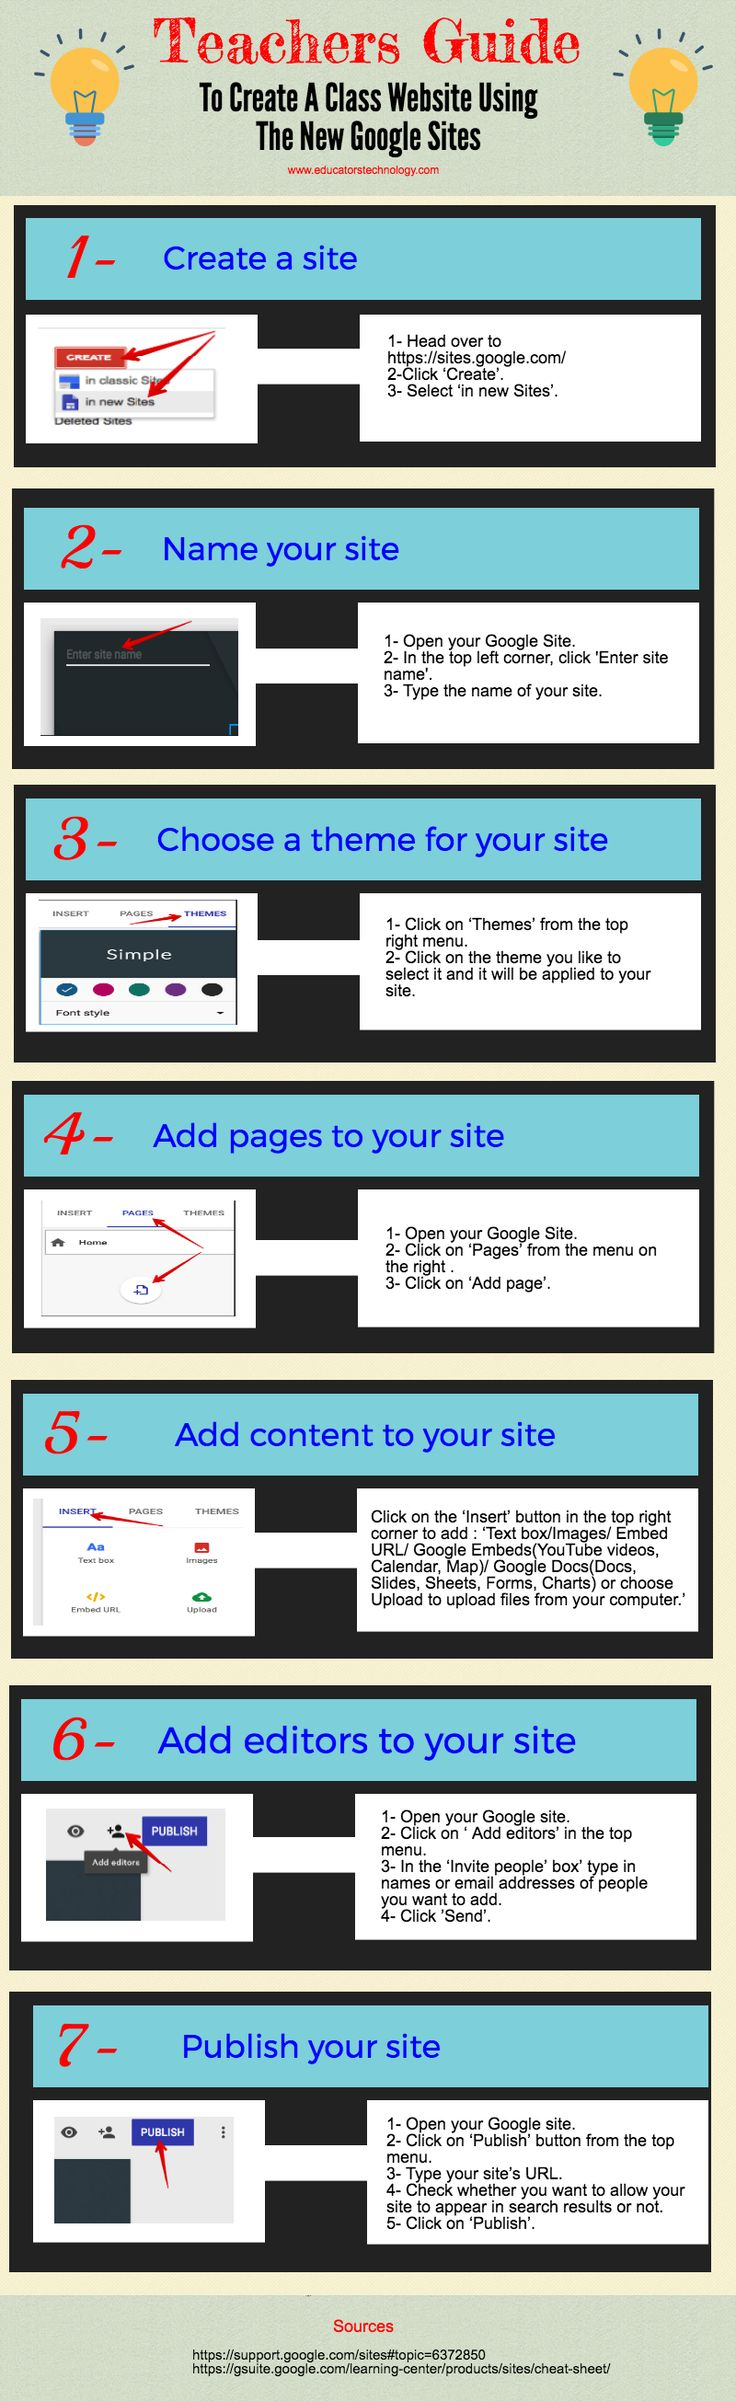 Teachers Guide to Create A Class Website Using The New Google Sites